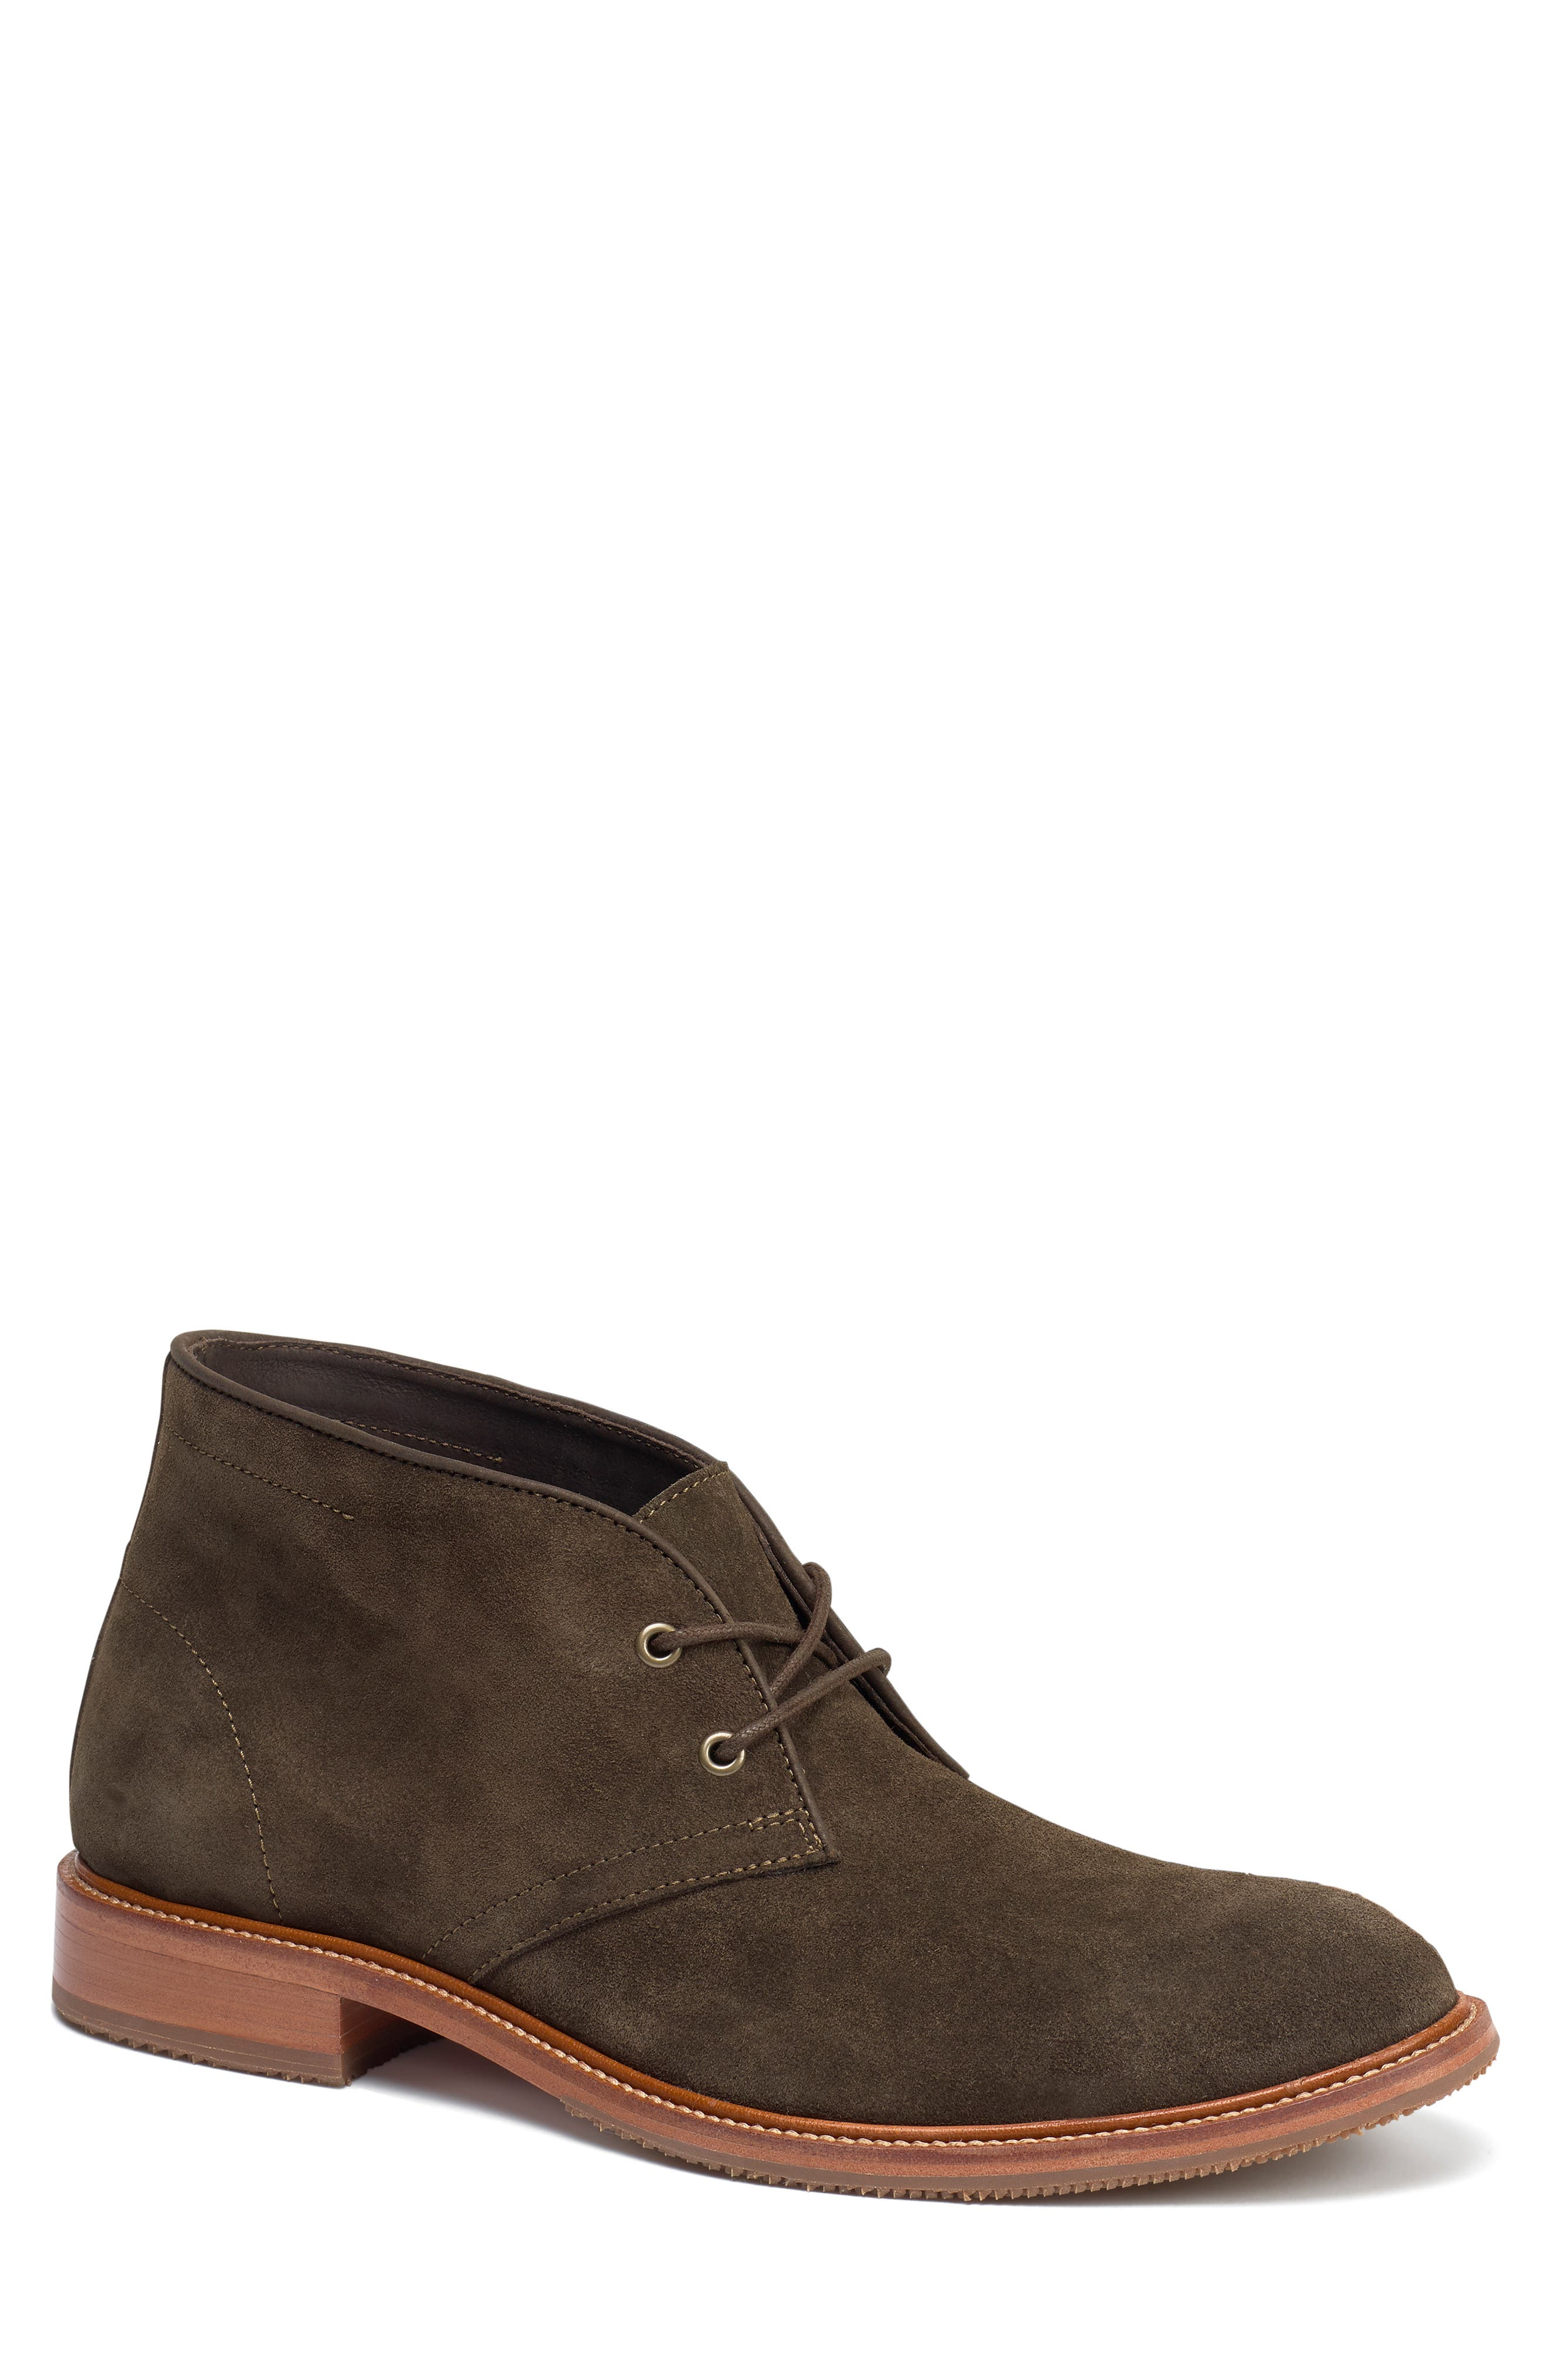 TRASK Landers Chukka Boot, Main, color, OLIVE SUEDE